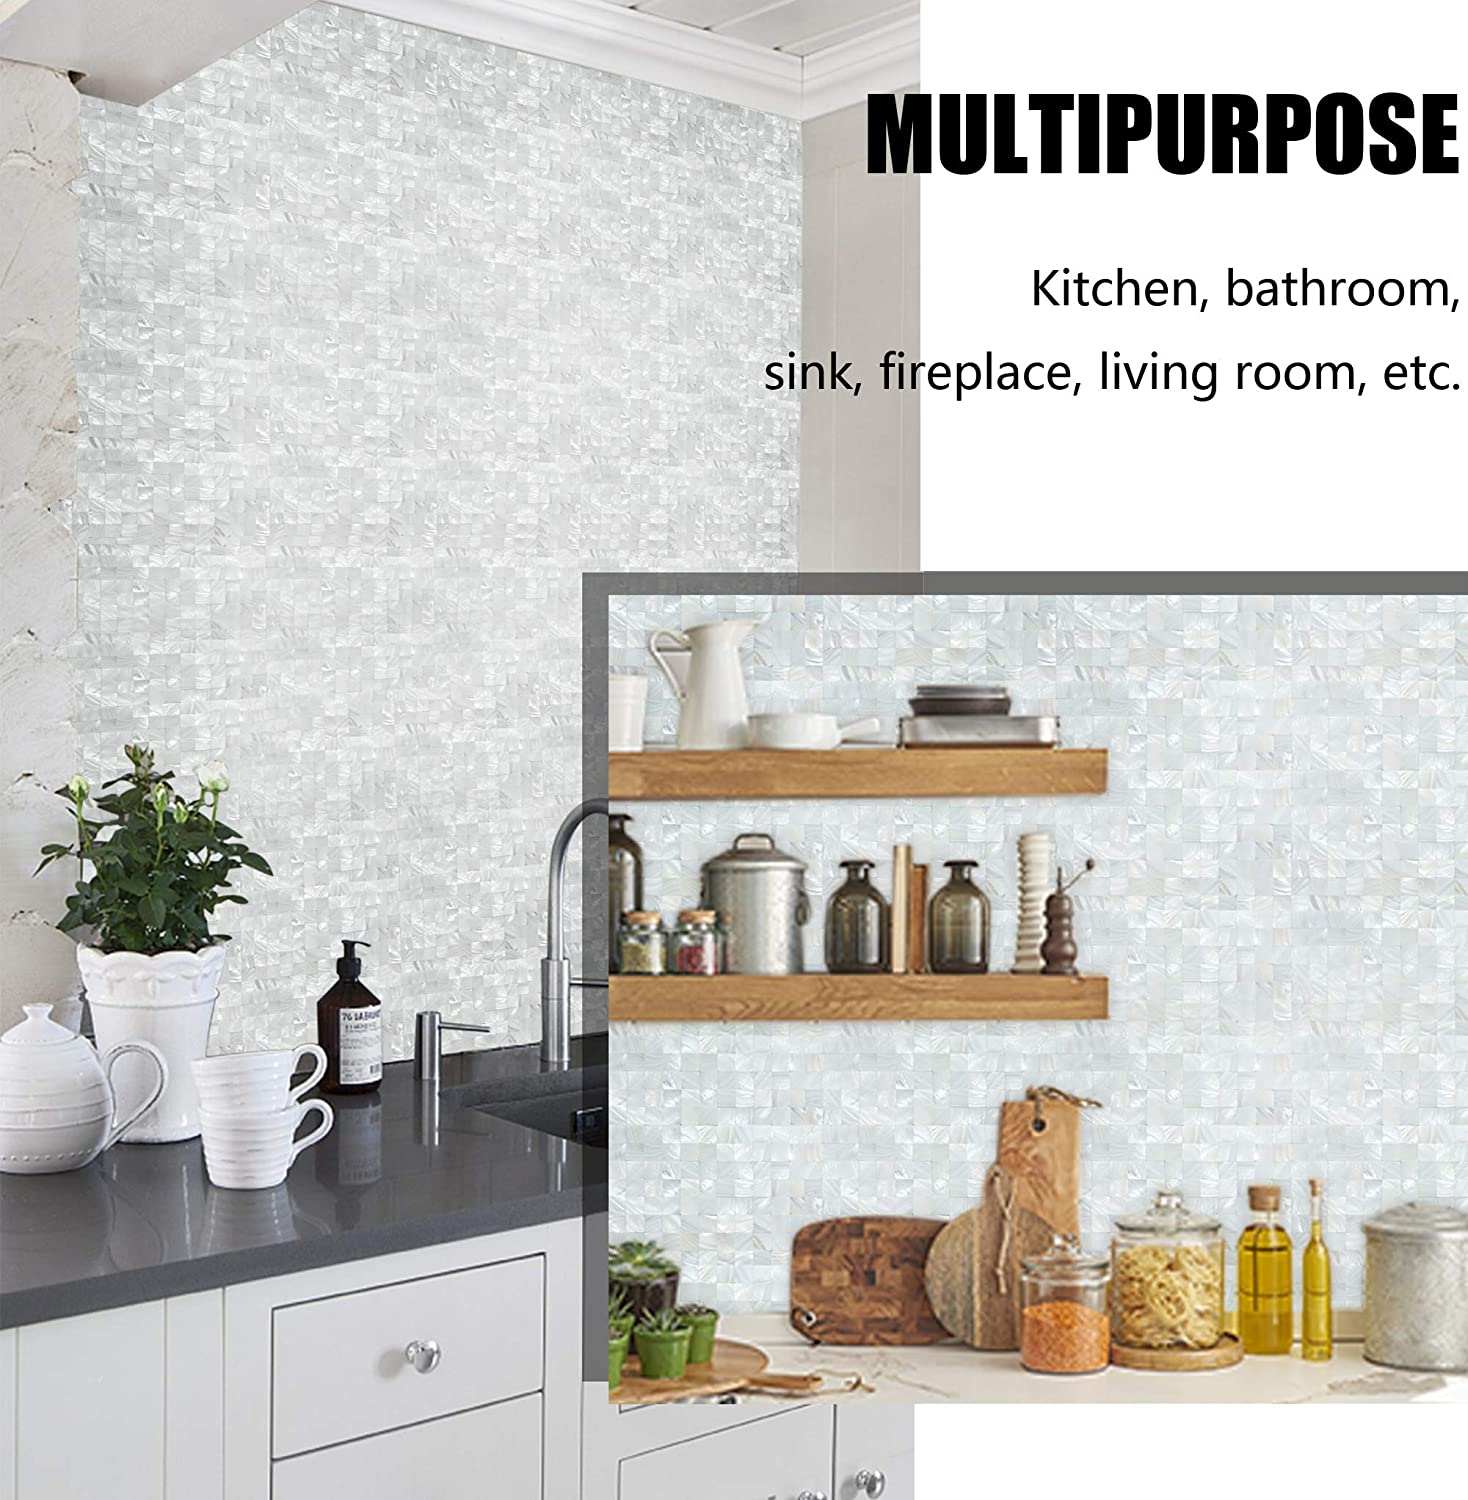 Kasaro Wall Stickers Peel And Stick Mosaic Shell Backsplash Sticker For Bedroom And Bathroom Mother Of Pearl 1 White Wall Stickers Murals Home Decor Accents Rayvoltbike Com